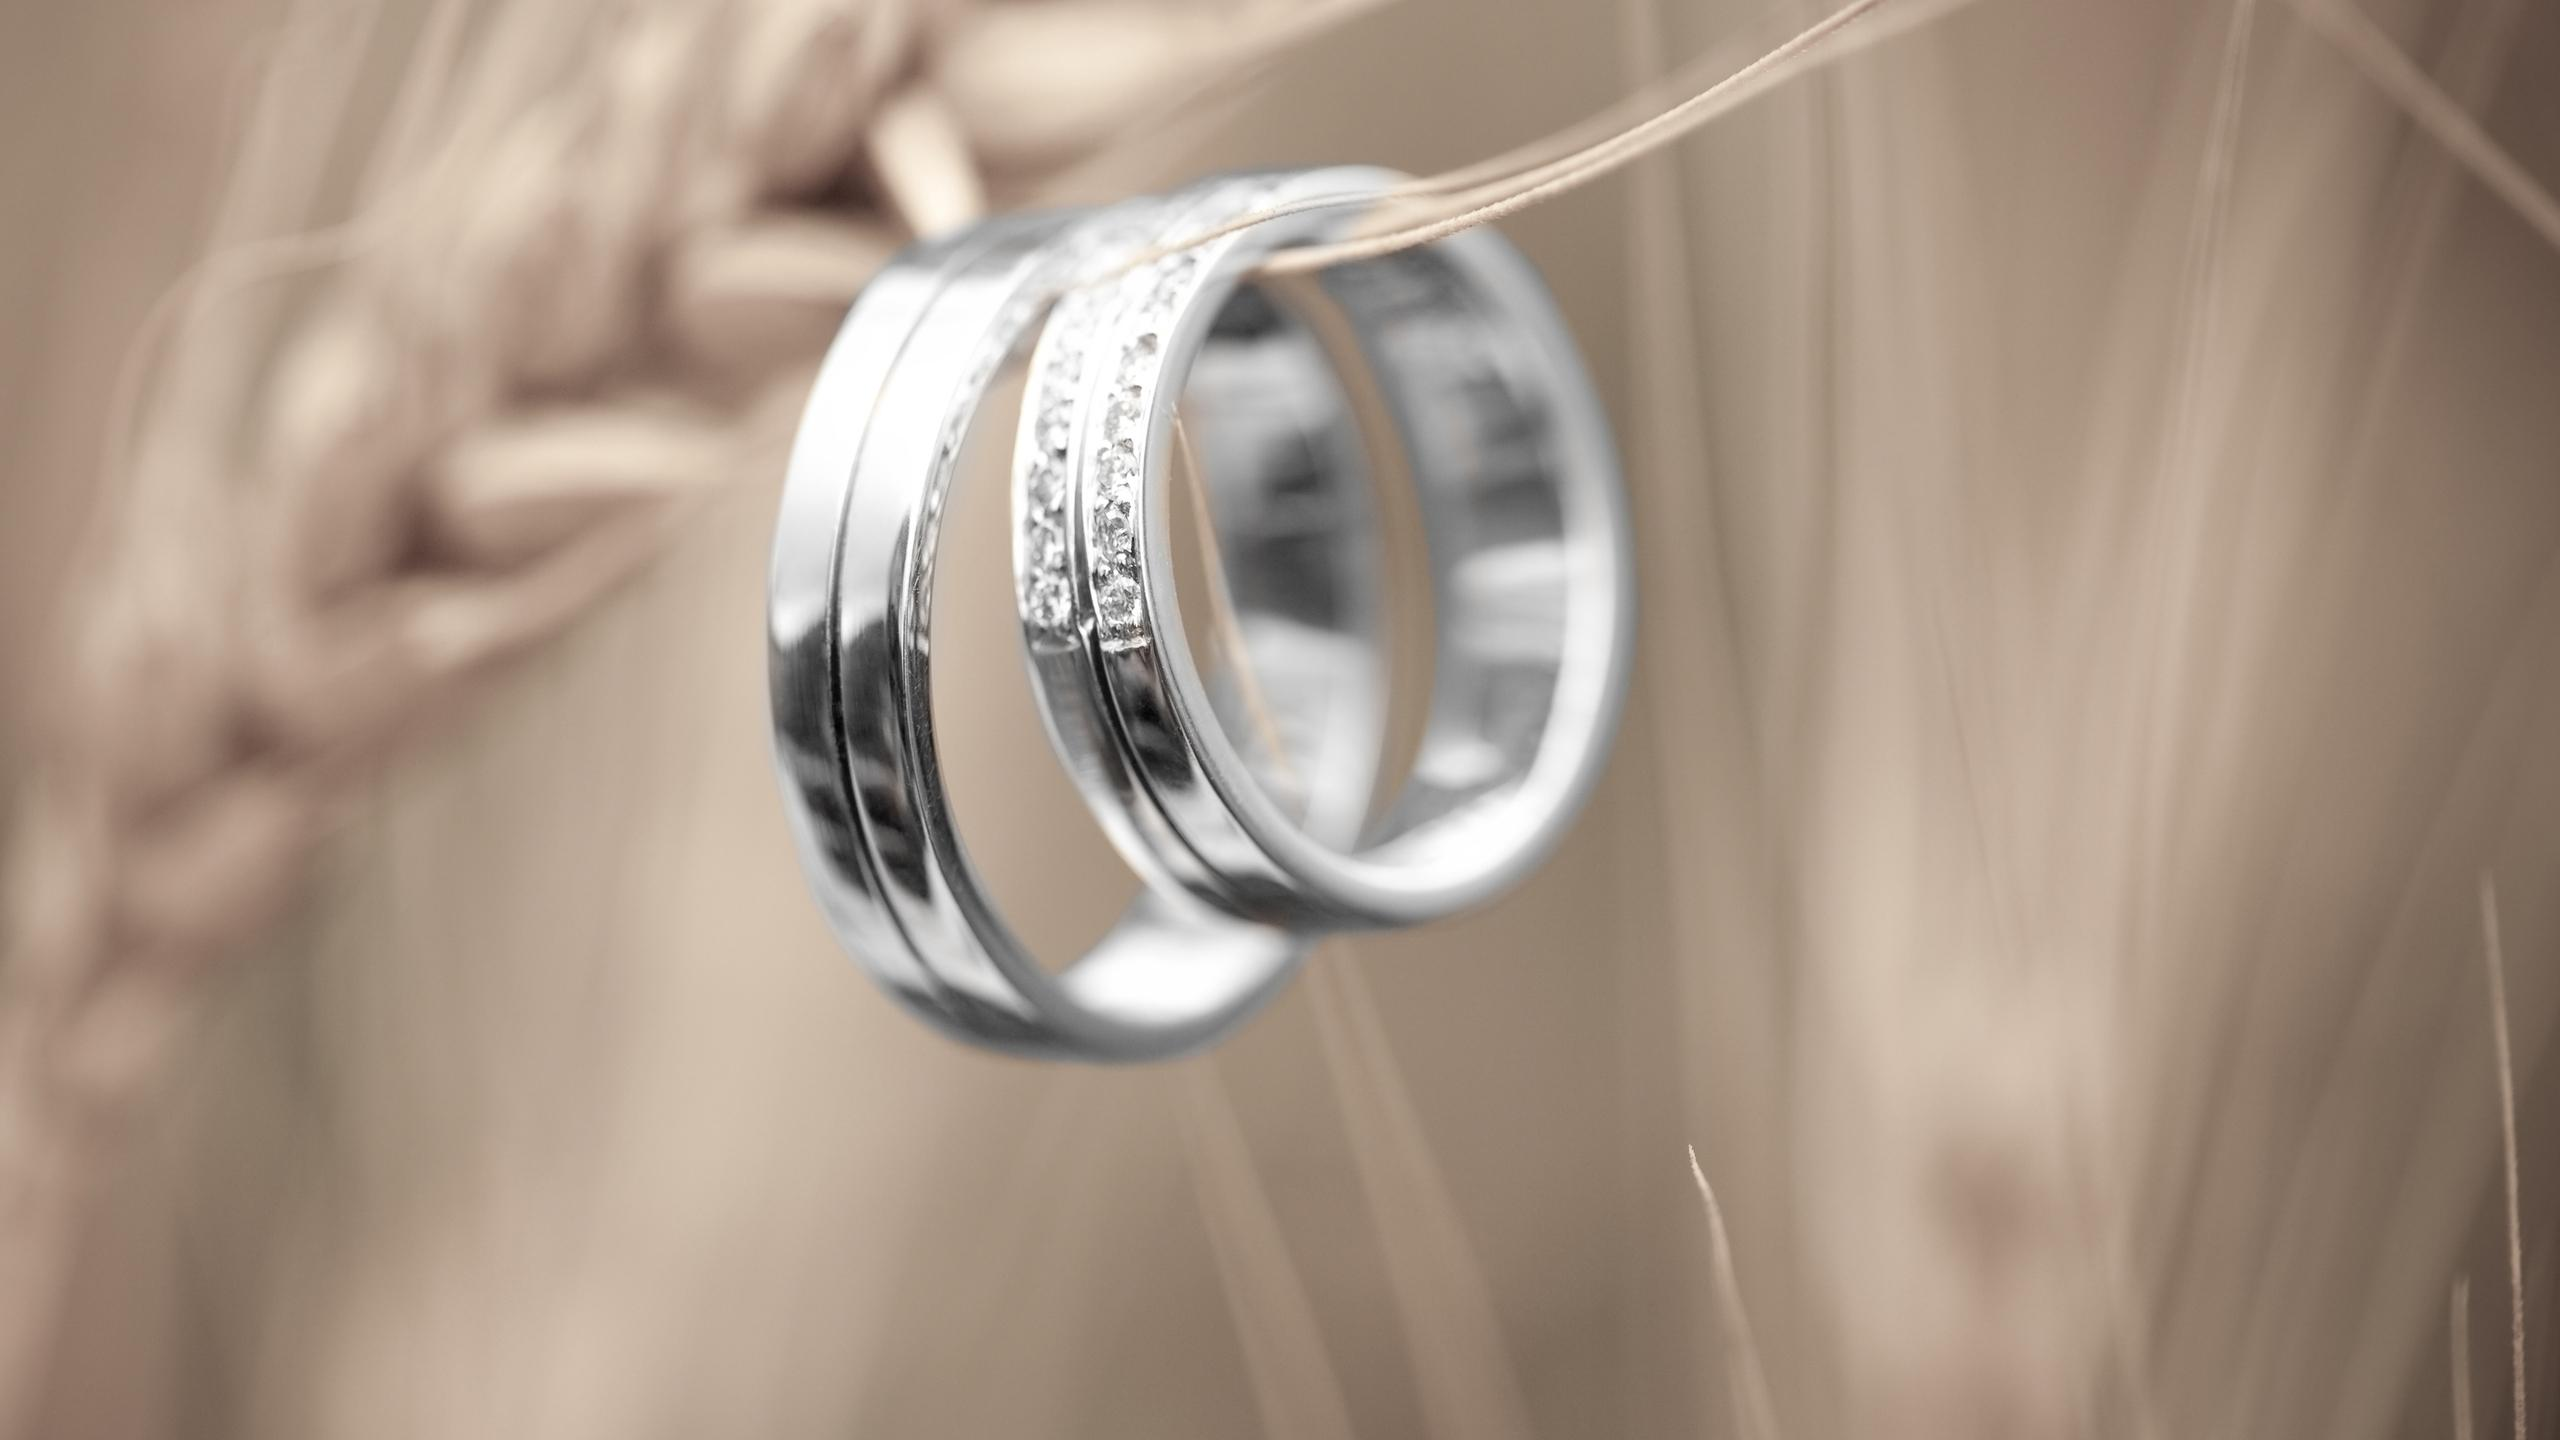 ring wallpaper hd 45342